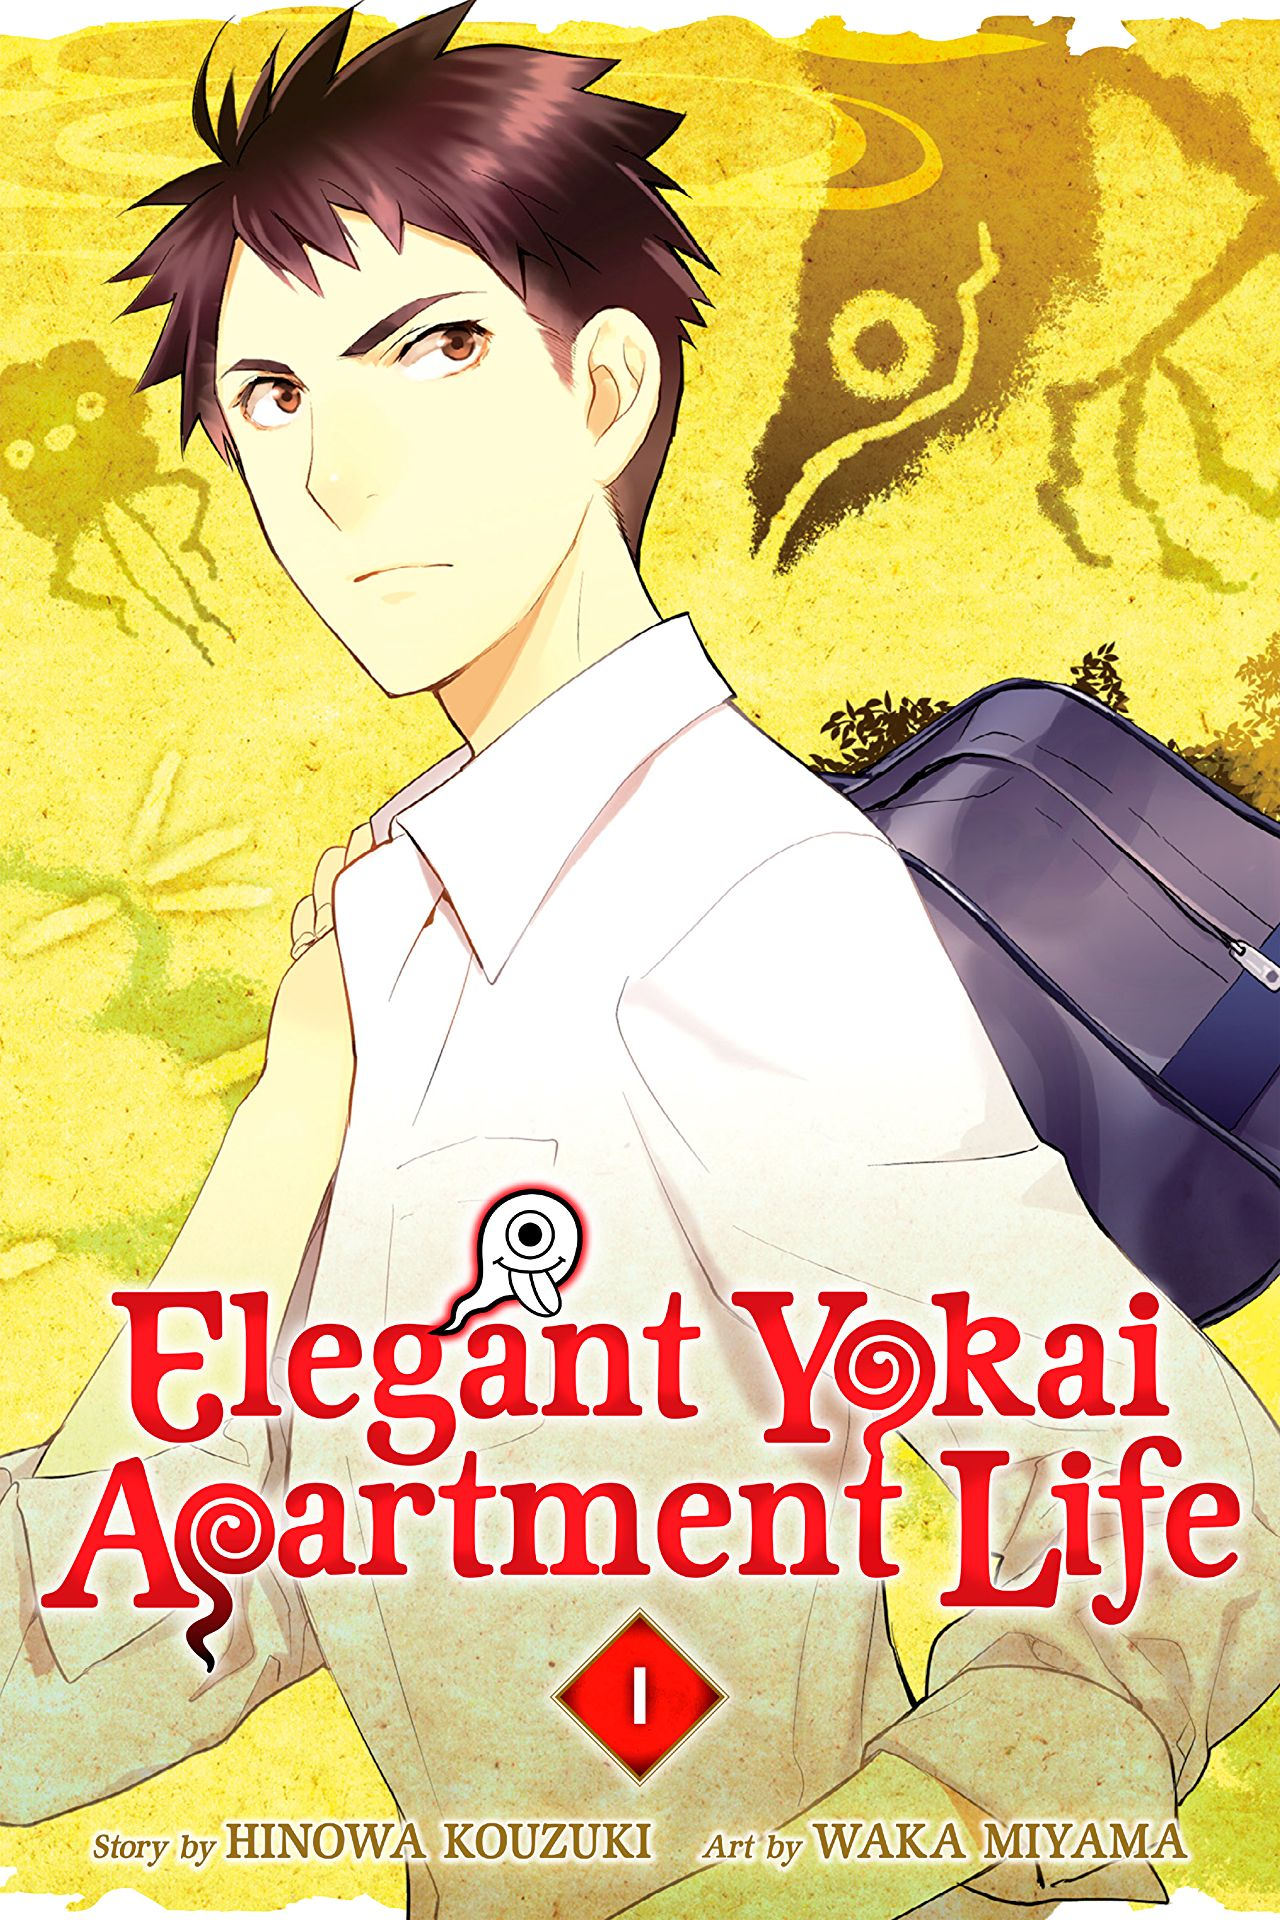 Elegant Yokai Apartment Life Vol. 1 Review